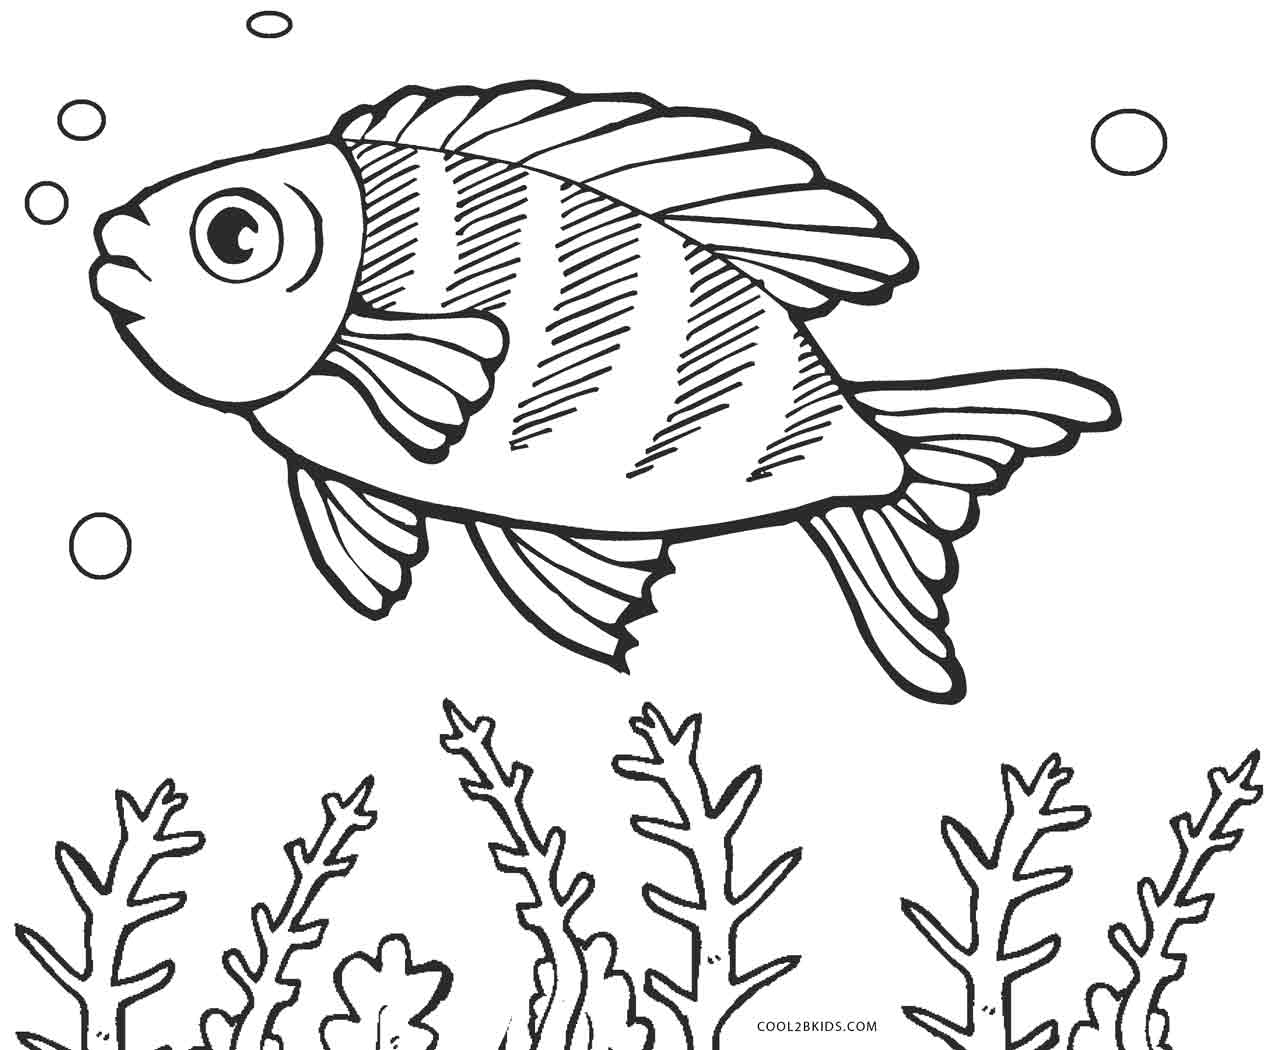 Free printable fish coloring pages for kids cool2bkids for Printable fish coloring pages